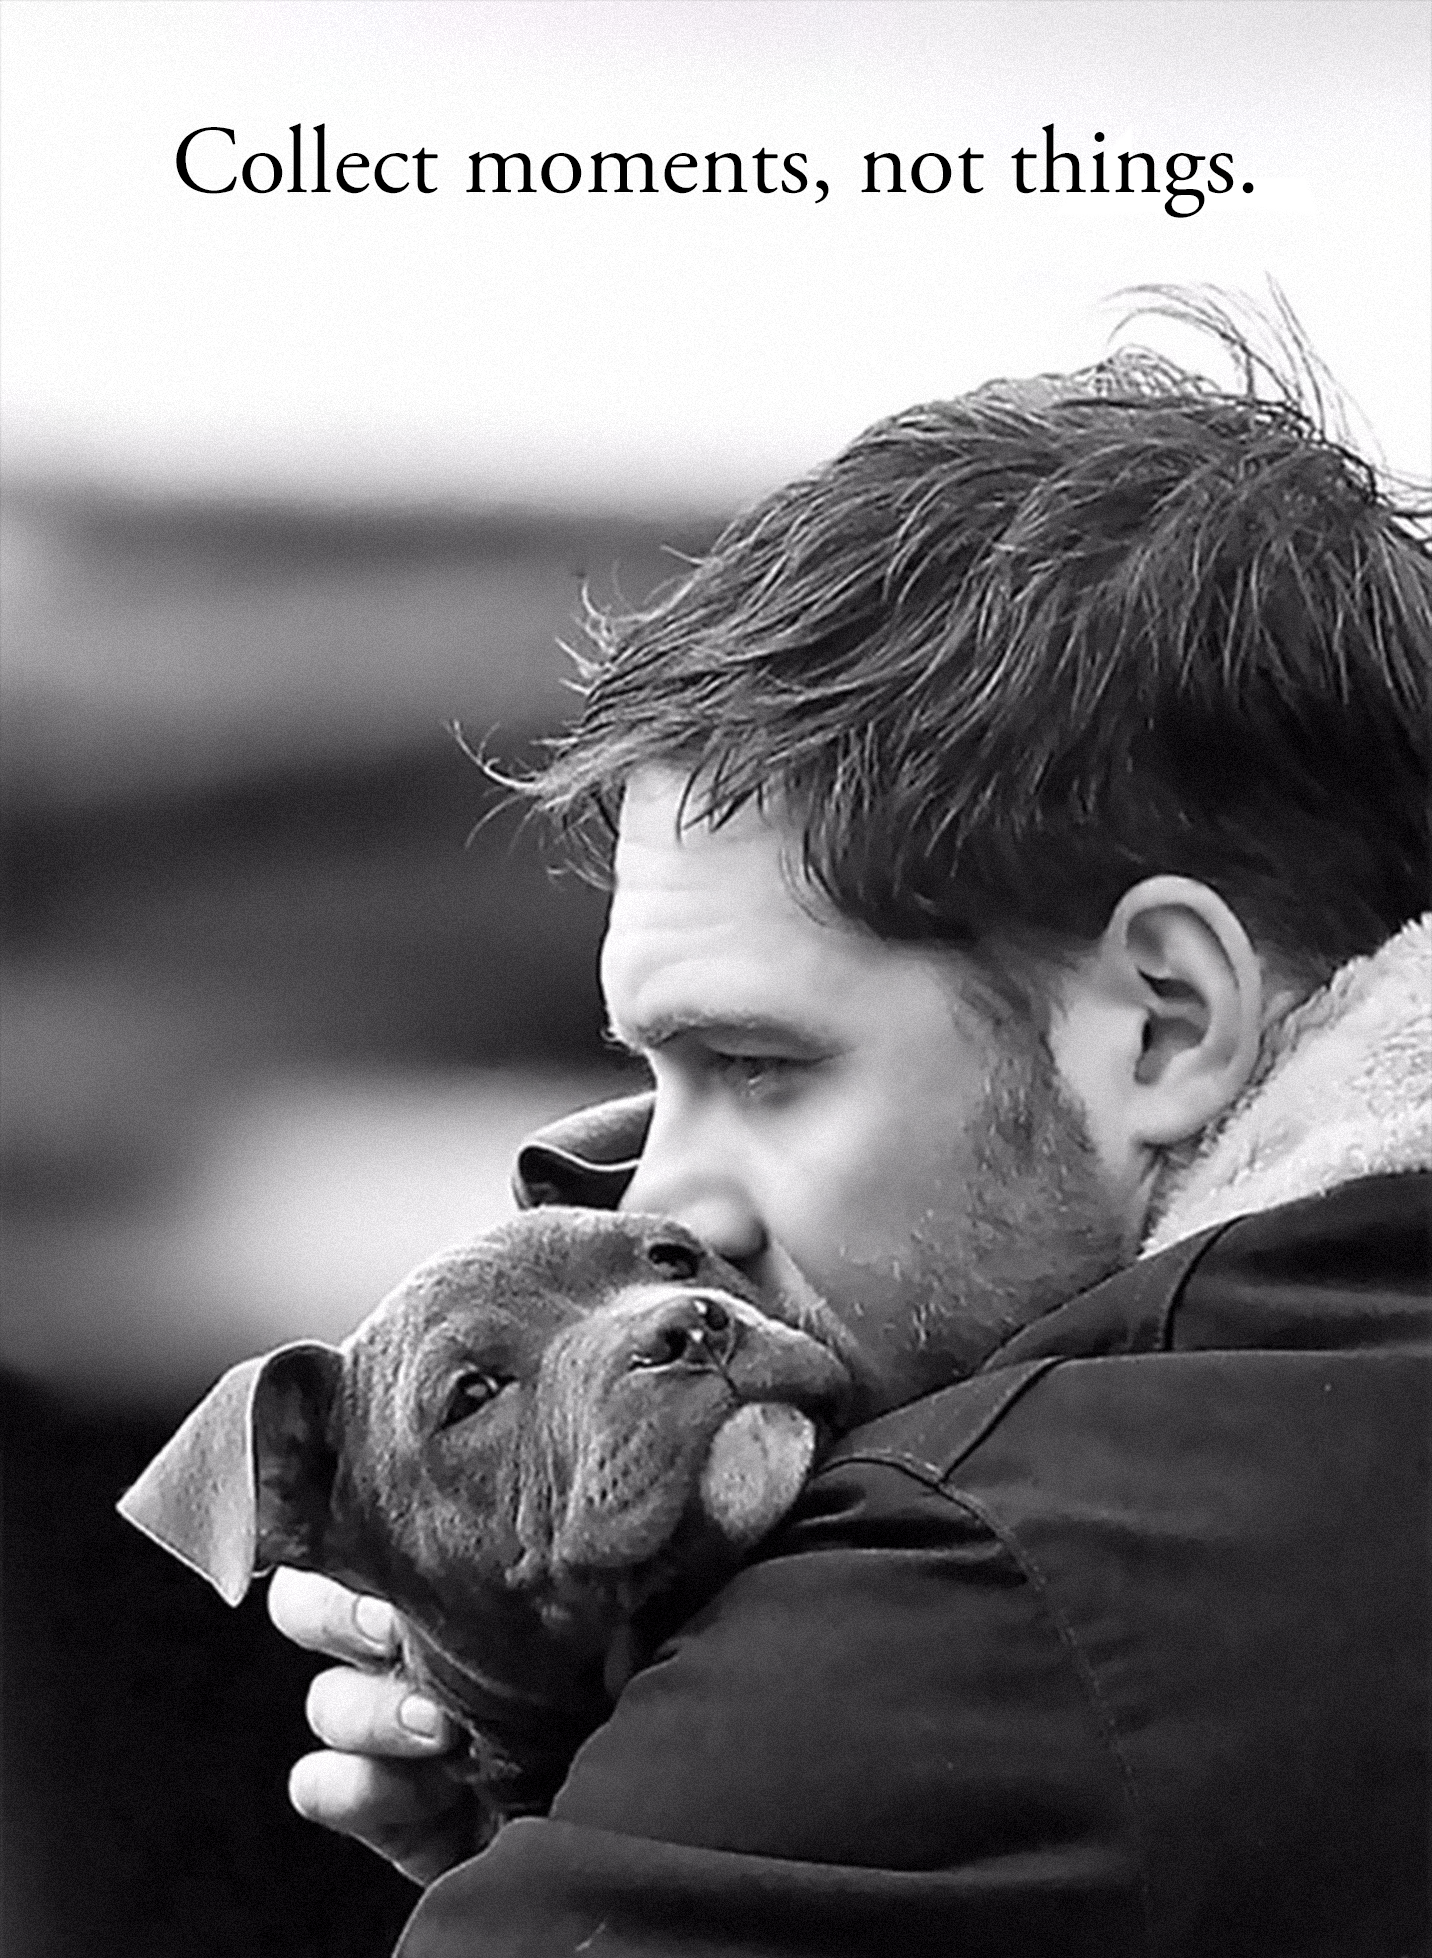 Pin by Kelly Foster on True quotes Tom hardy, Dog love